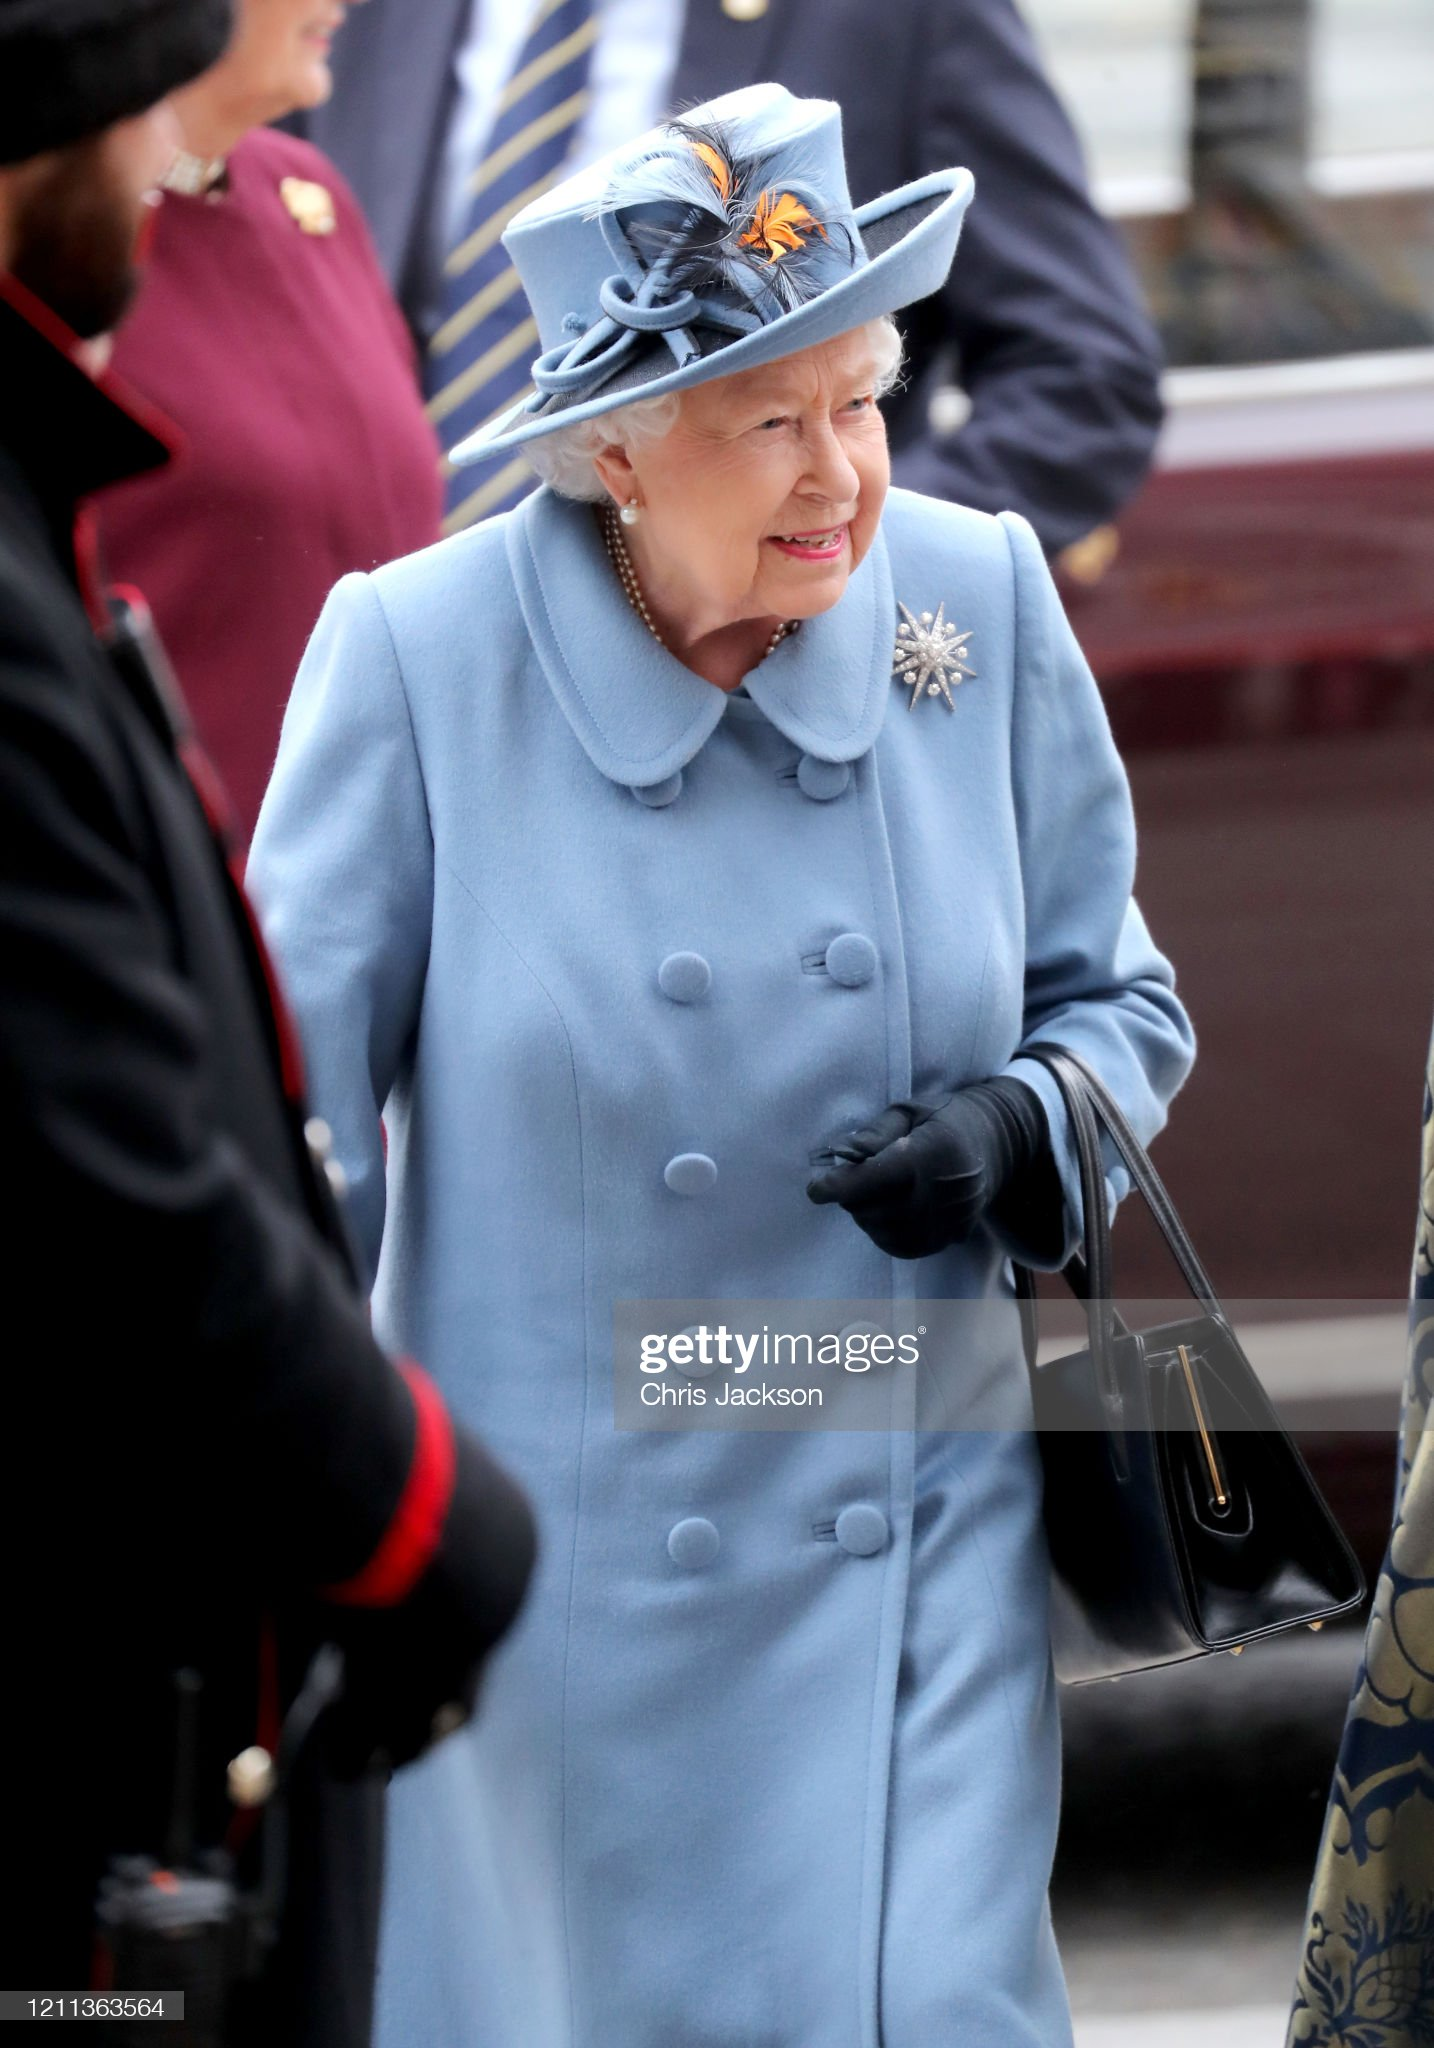 https://media.gettyimages.com/photos/queen-elizabeth-ii-attends-the-commonwealth-day-service-2020-at-on-picture-id1211363564?s=2048x2048